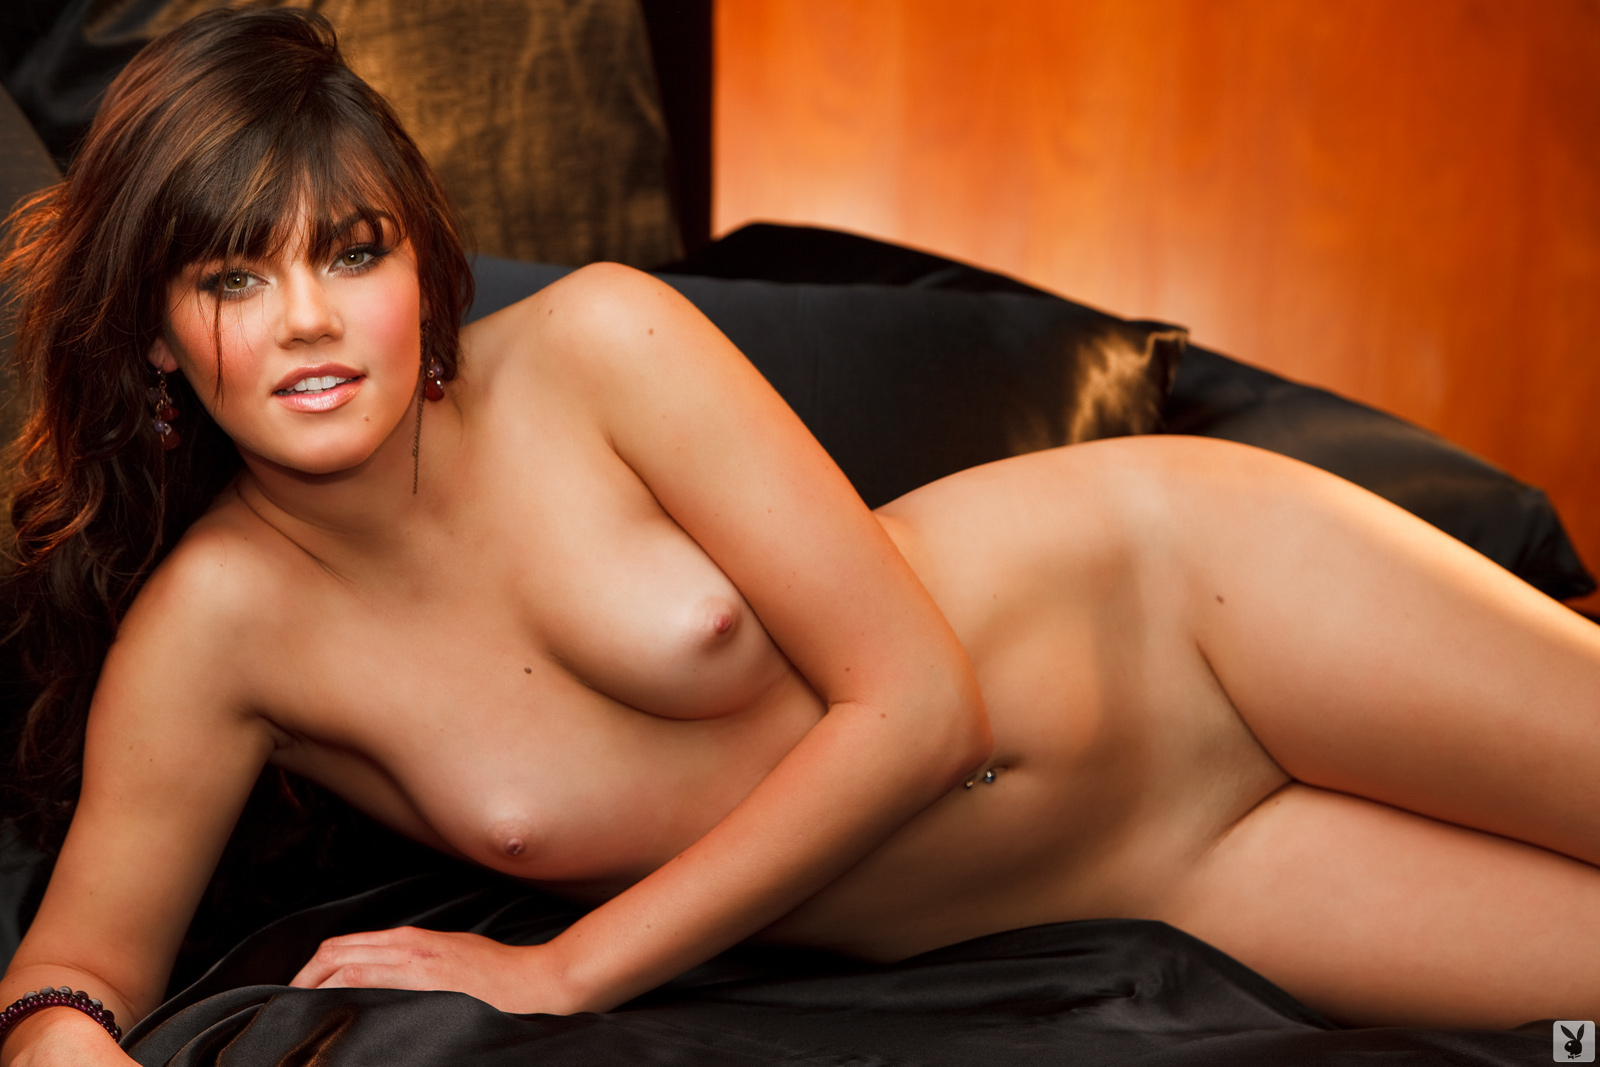 Sexy Furry Female Naked